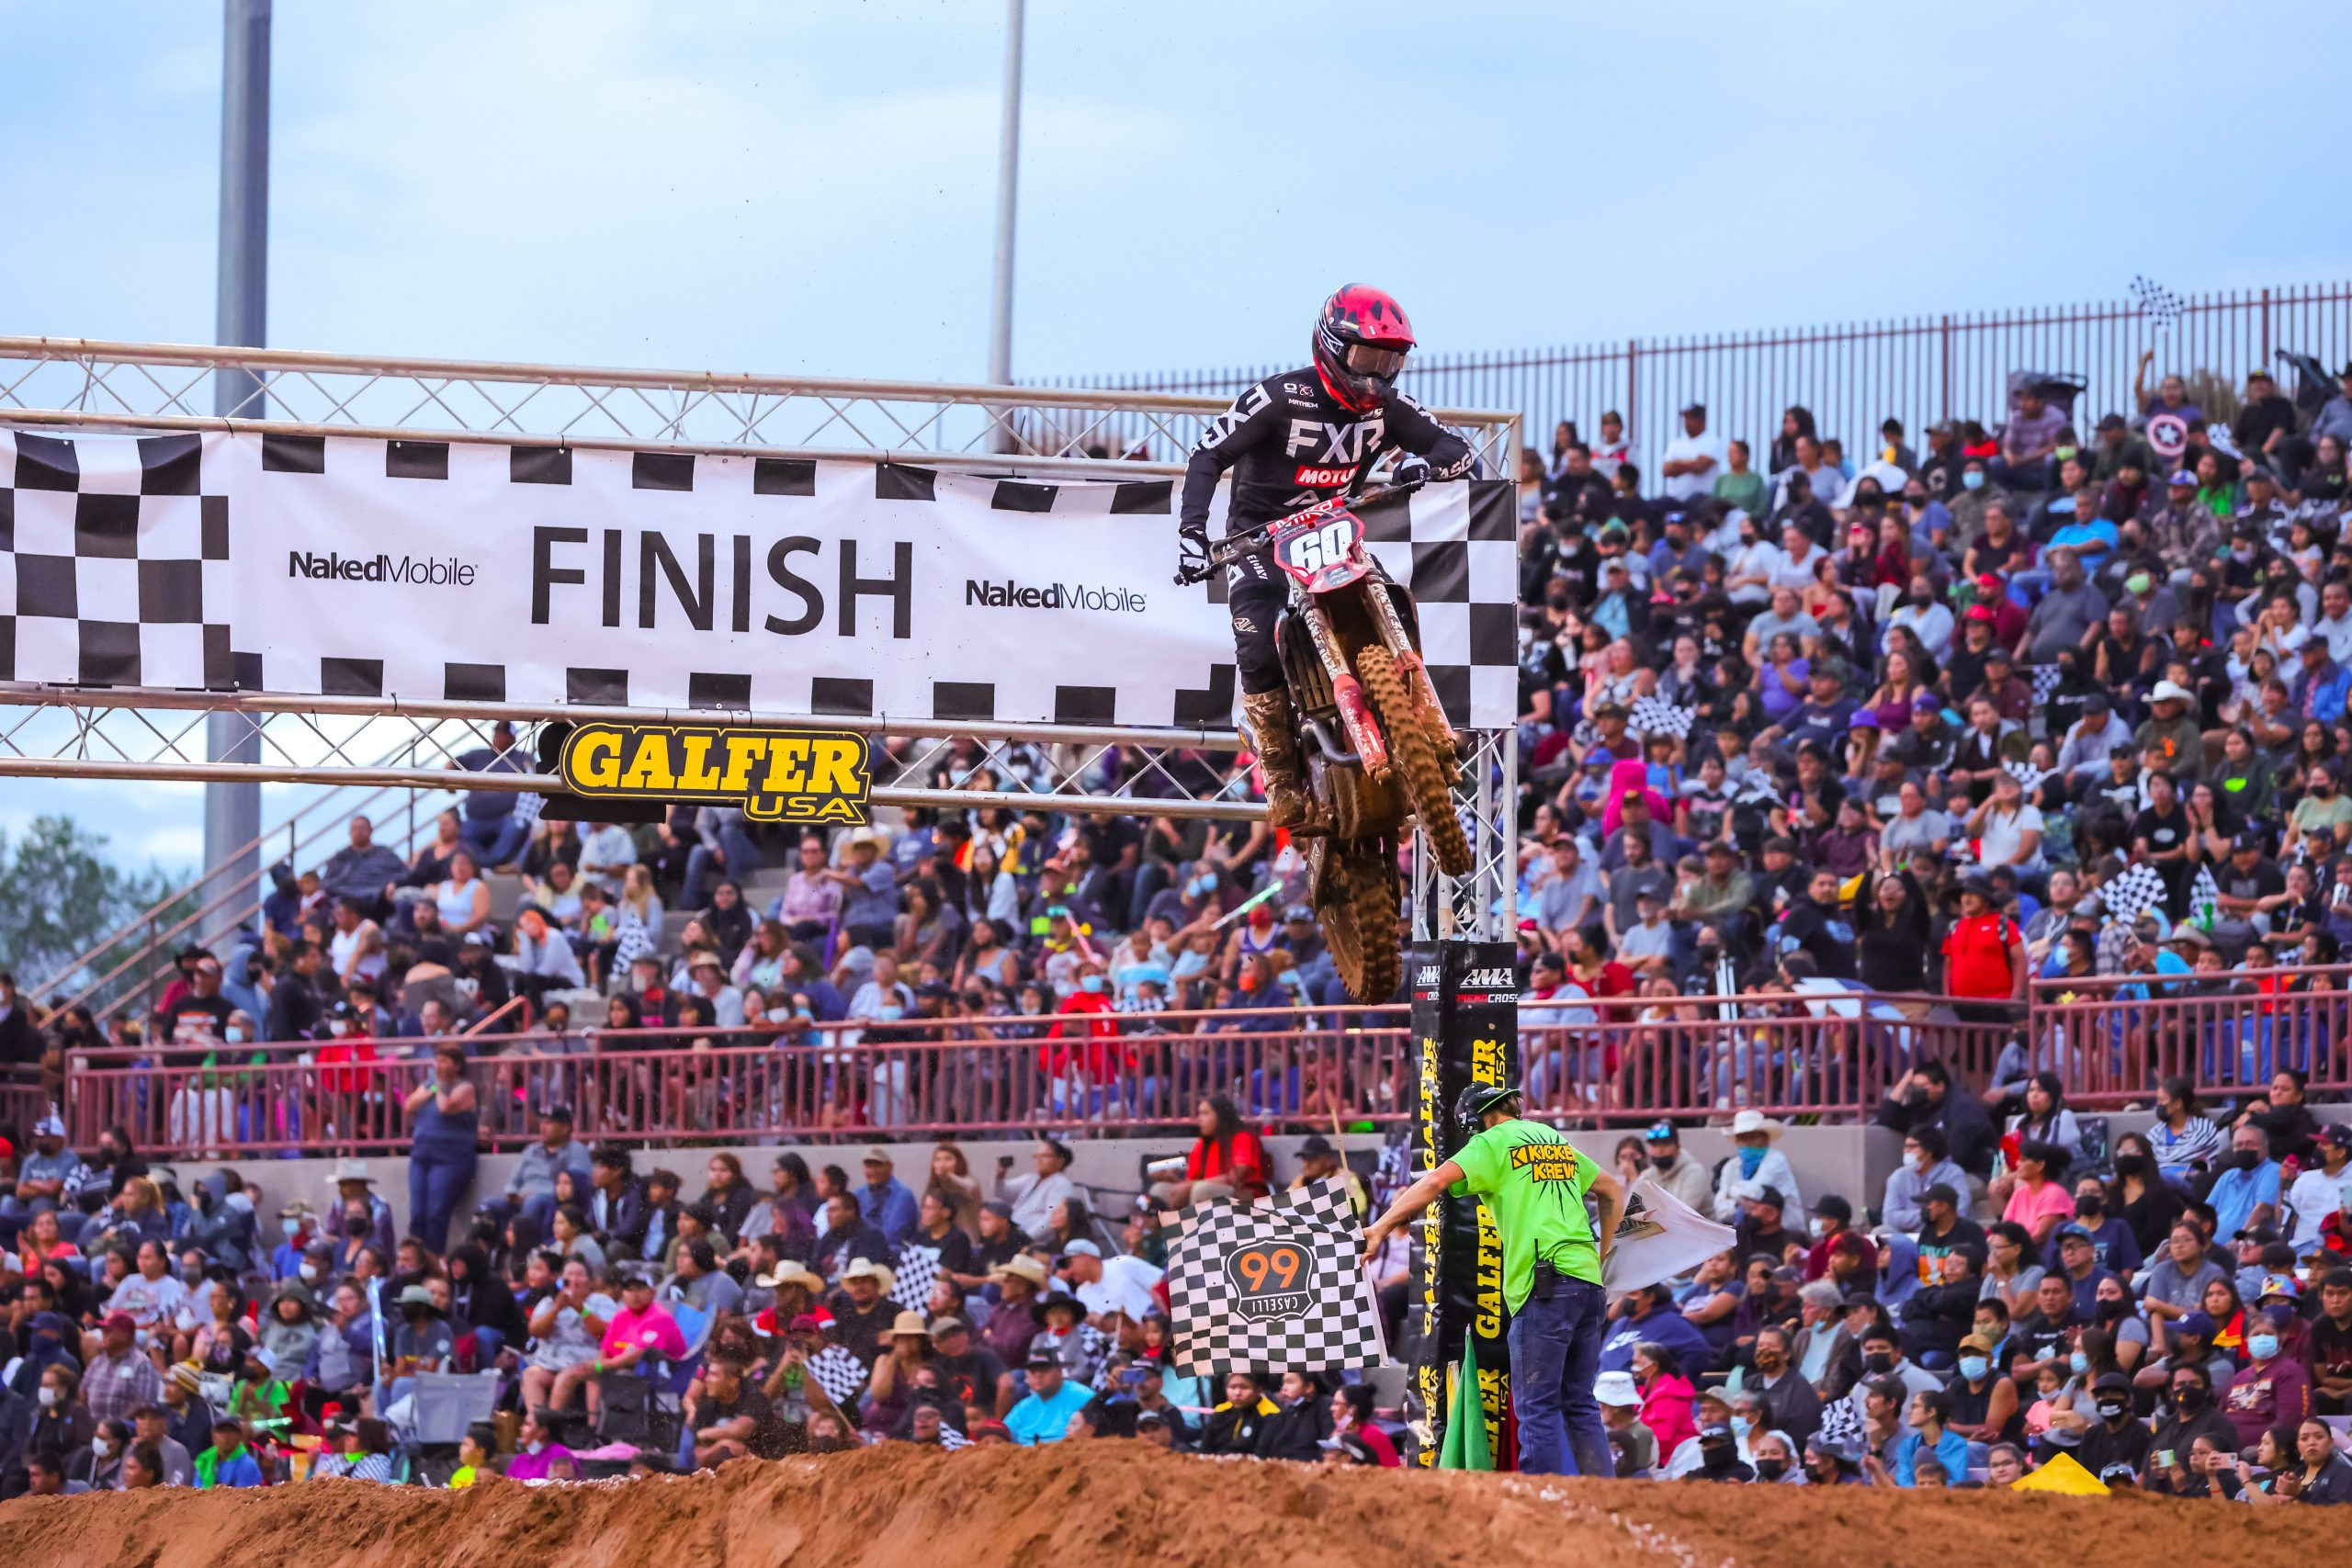 25th Anniversary Race Celebrated in front of Sold Out Crowds in Gallup